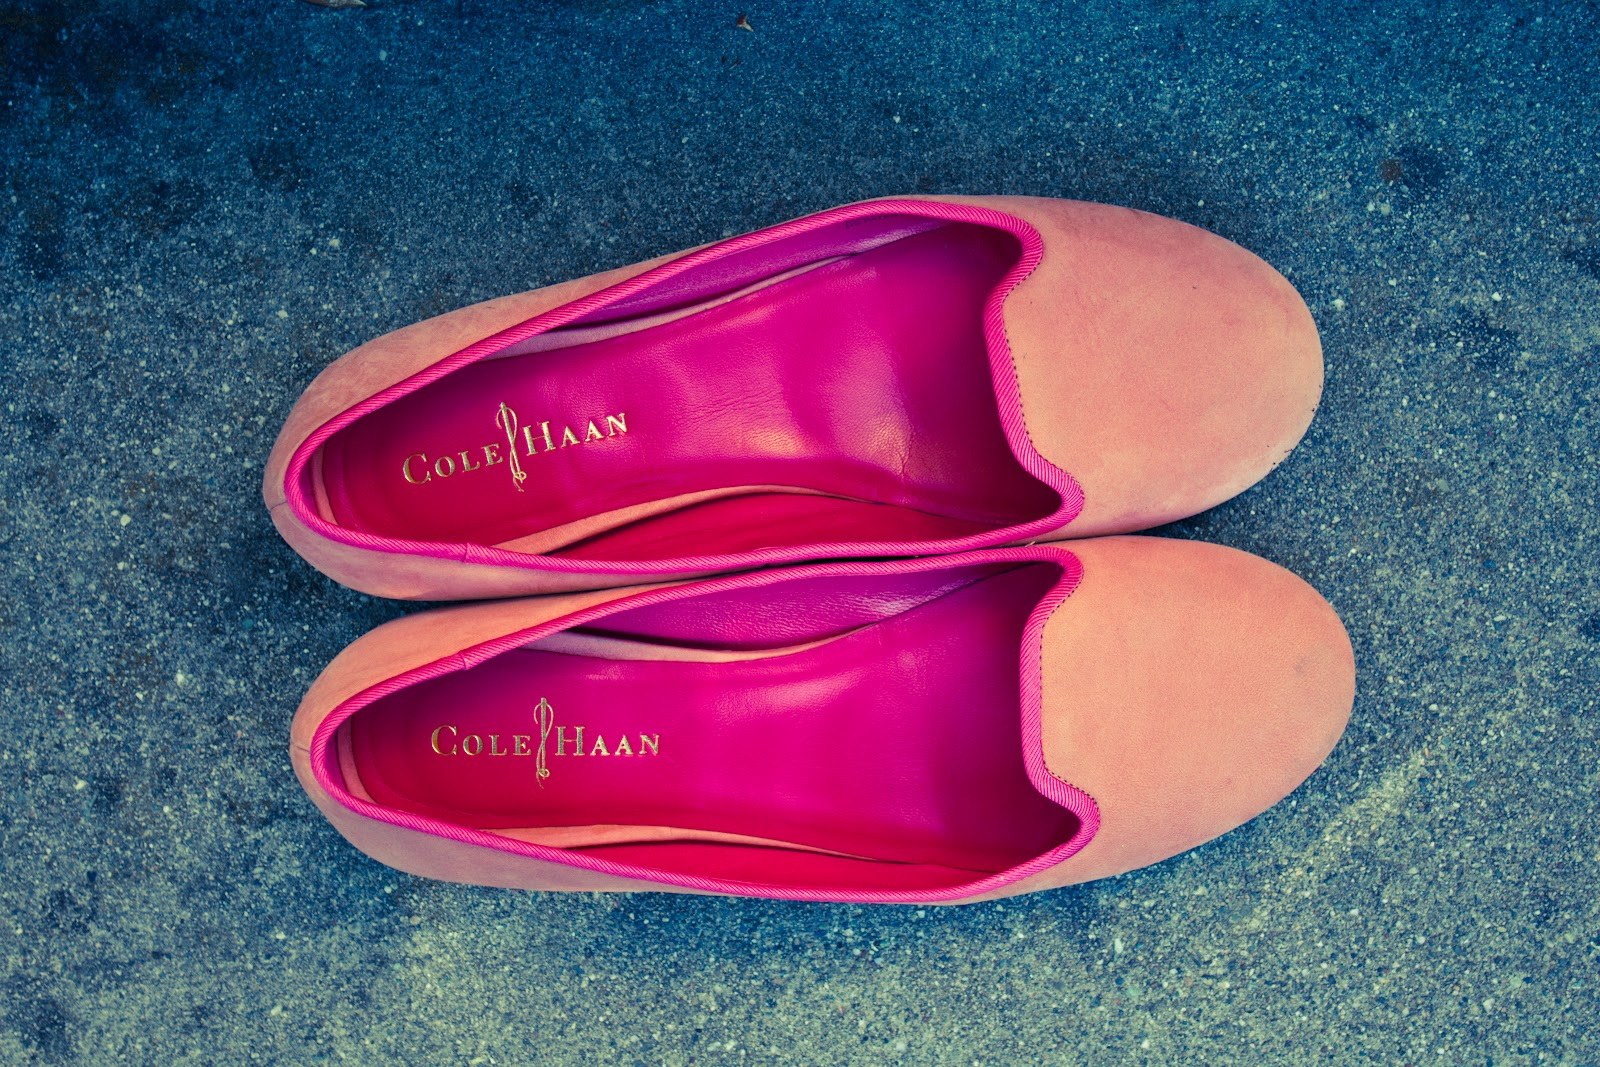 d5fc54b20644 Finally, I love these salmon pink suede slippers. Unfortunately, after I  promised myself I wouldn't buy anything but staples for my wardrobe, ...